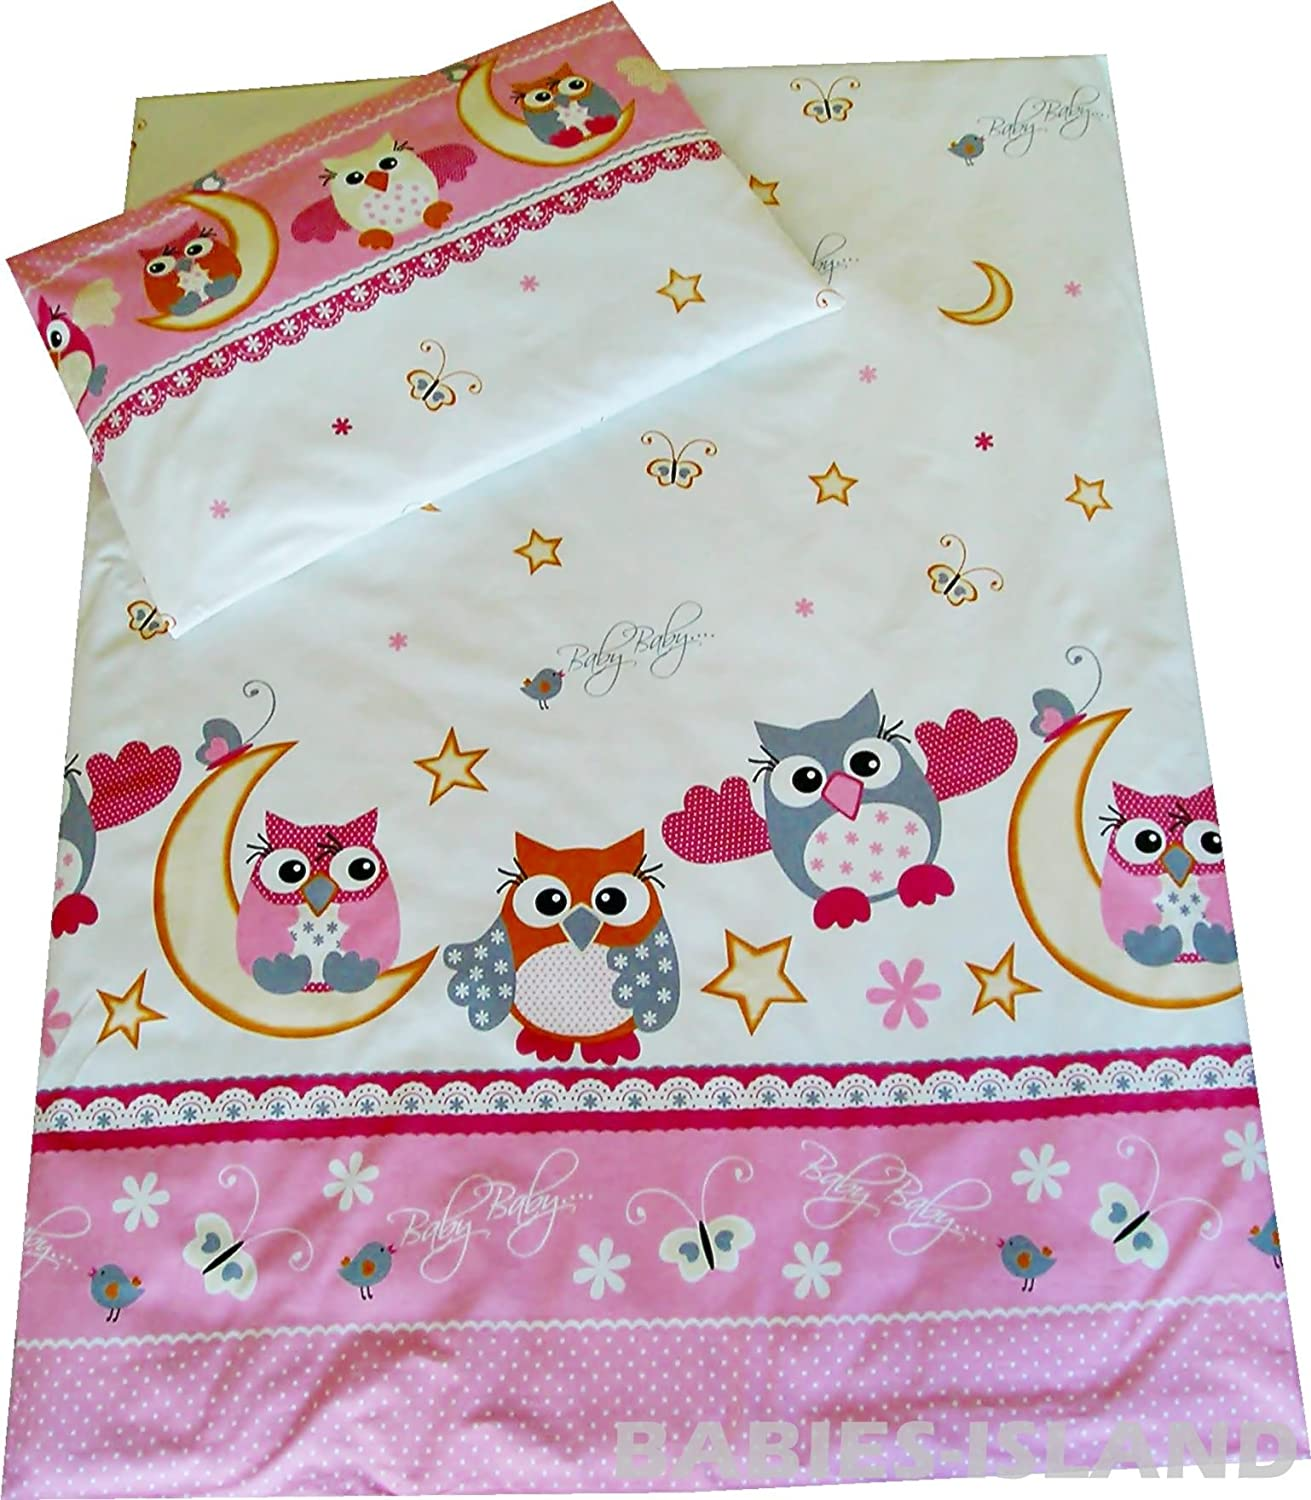 Babies-Island A 2 Piece Bedding Set Pillowcase+Duvet Cover For Baby To Fit Cot/Cot Bed - PINK OWLS WITH PINWHEEL(100x135 cm)